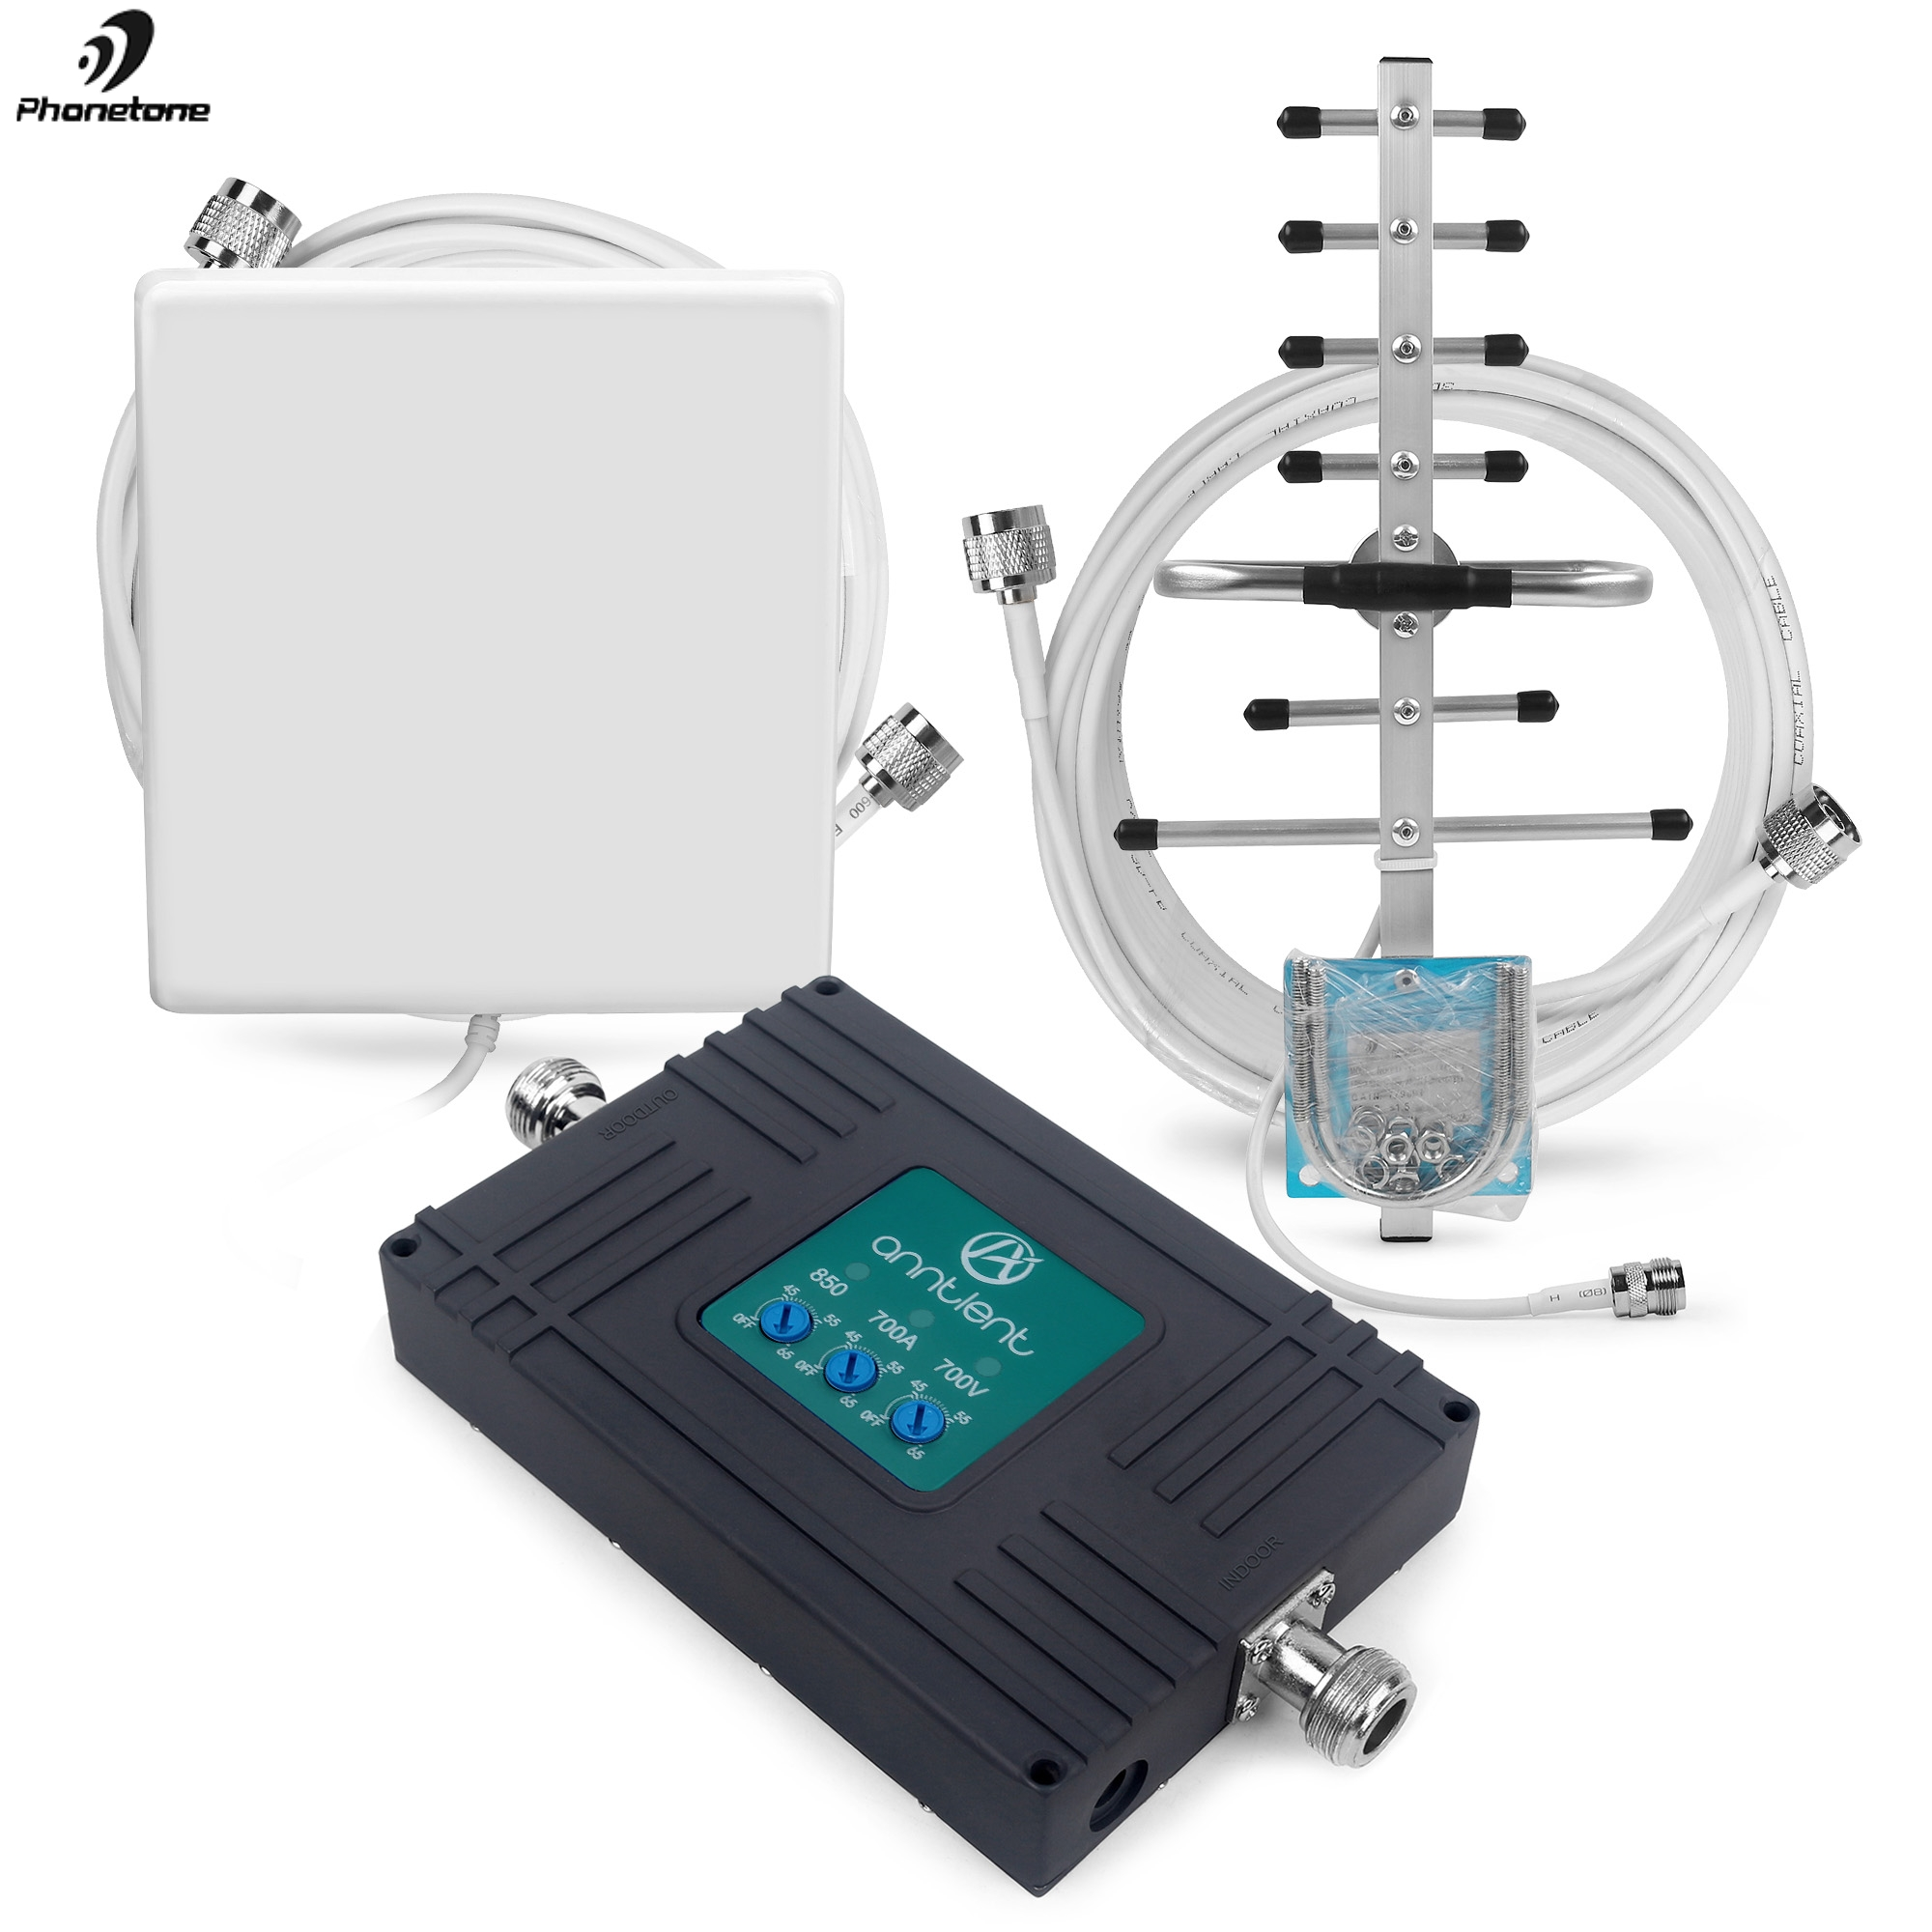 Cell Phone Signal Booster For US/CA 2G 3G 4G 850/700MHz AT&T Verizon Cell Signal Amplifier Band 5/12/13/17 LTE For Voice/Data